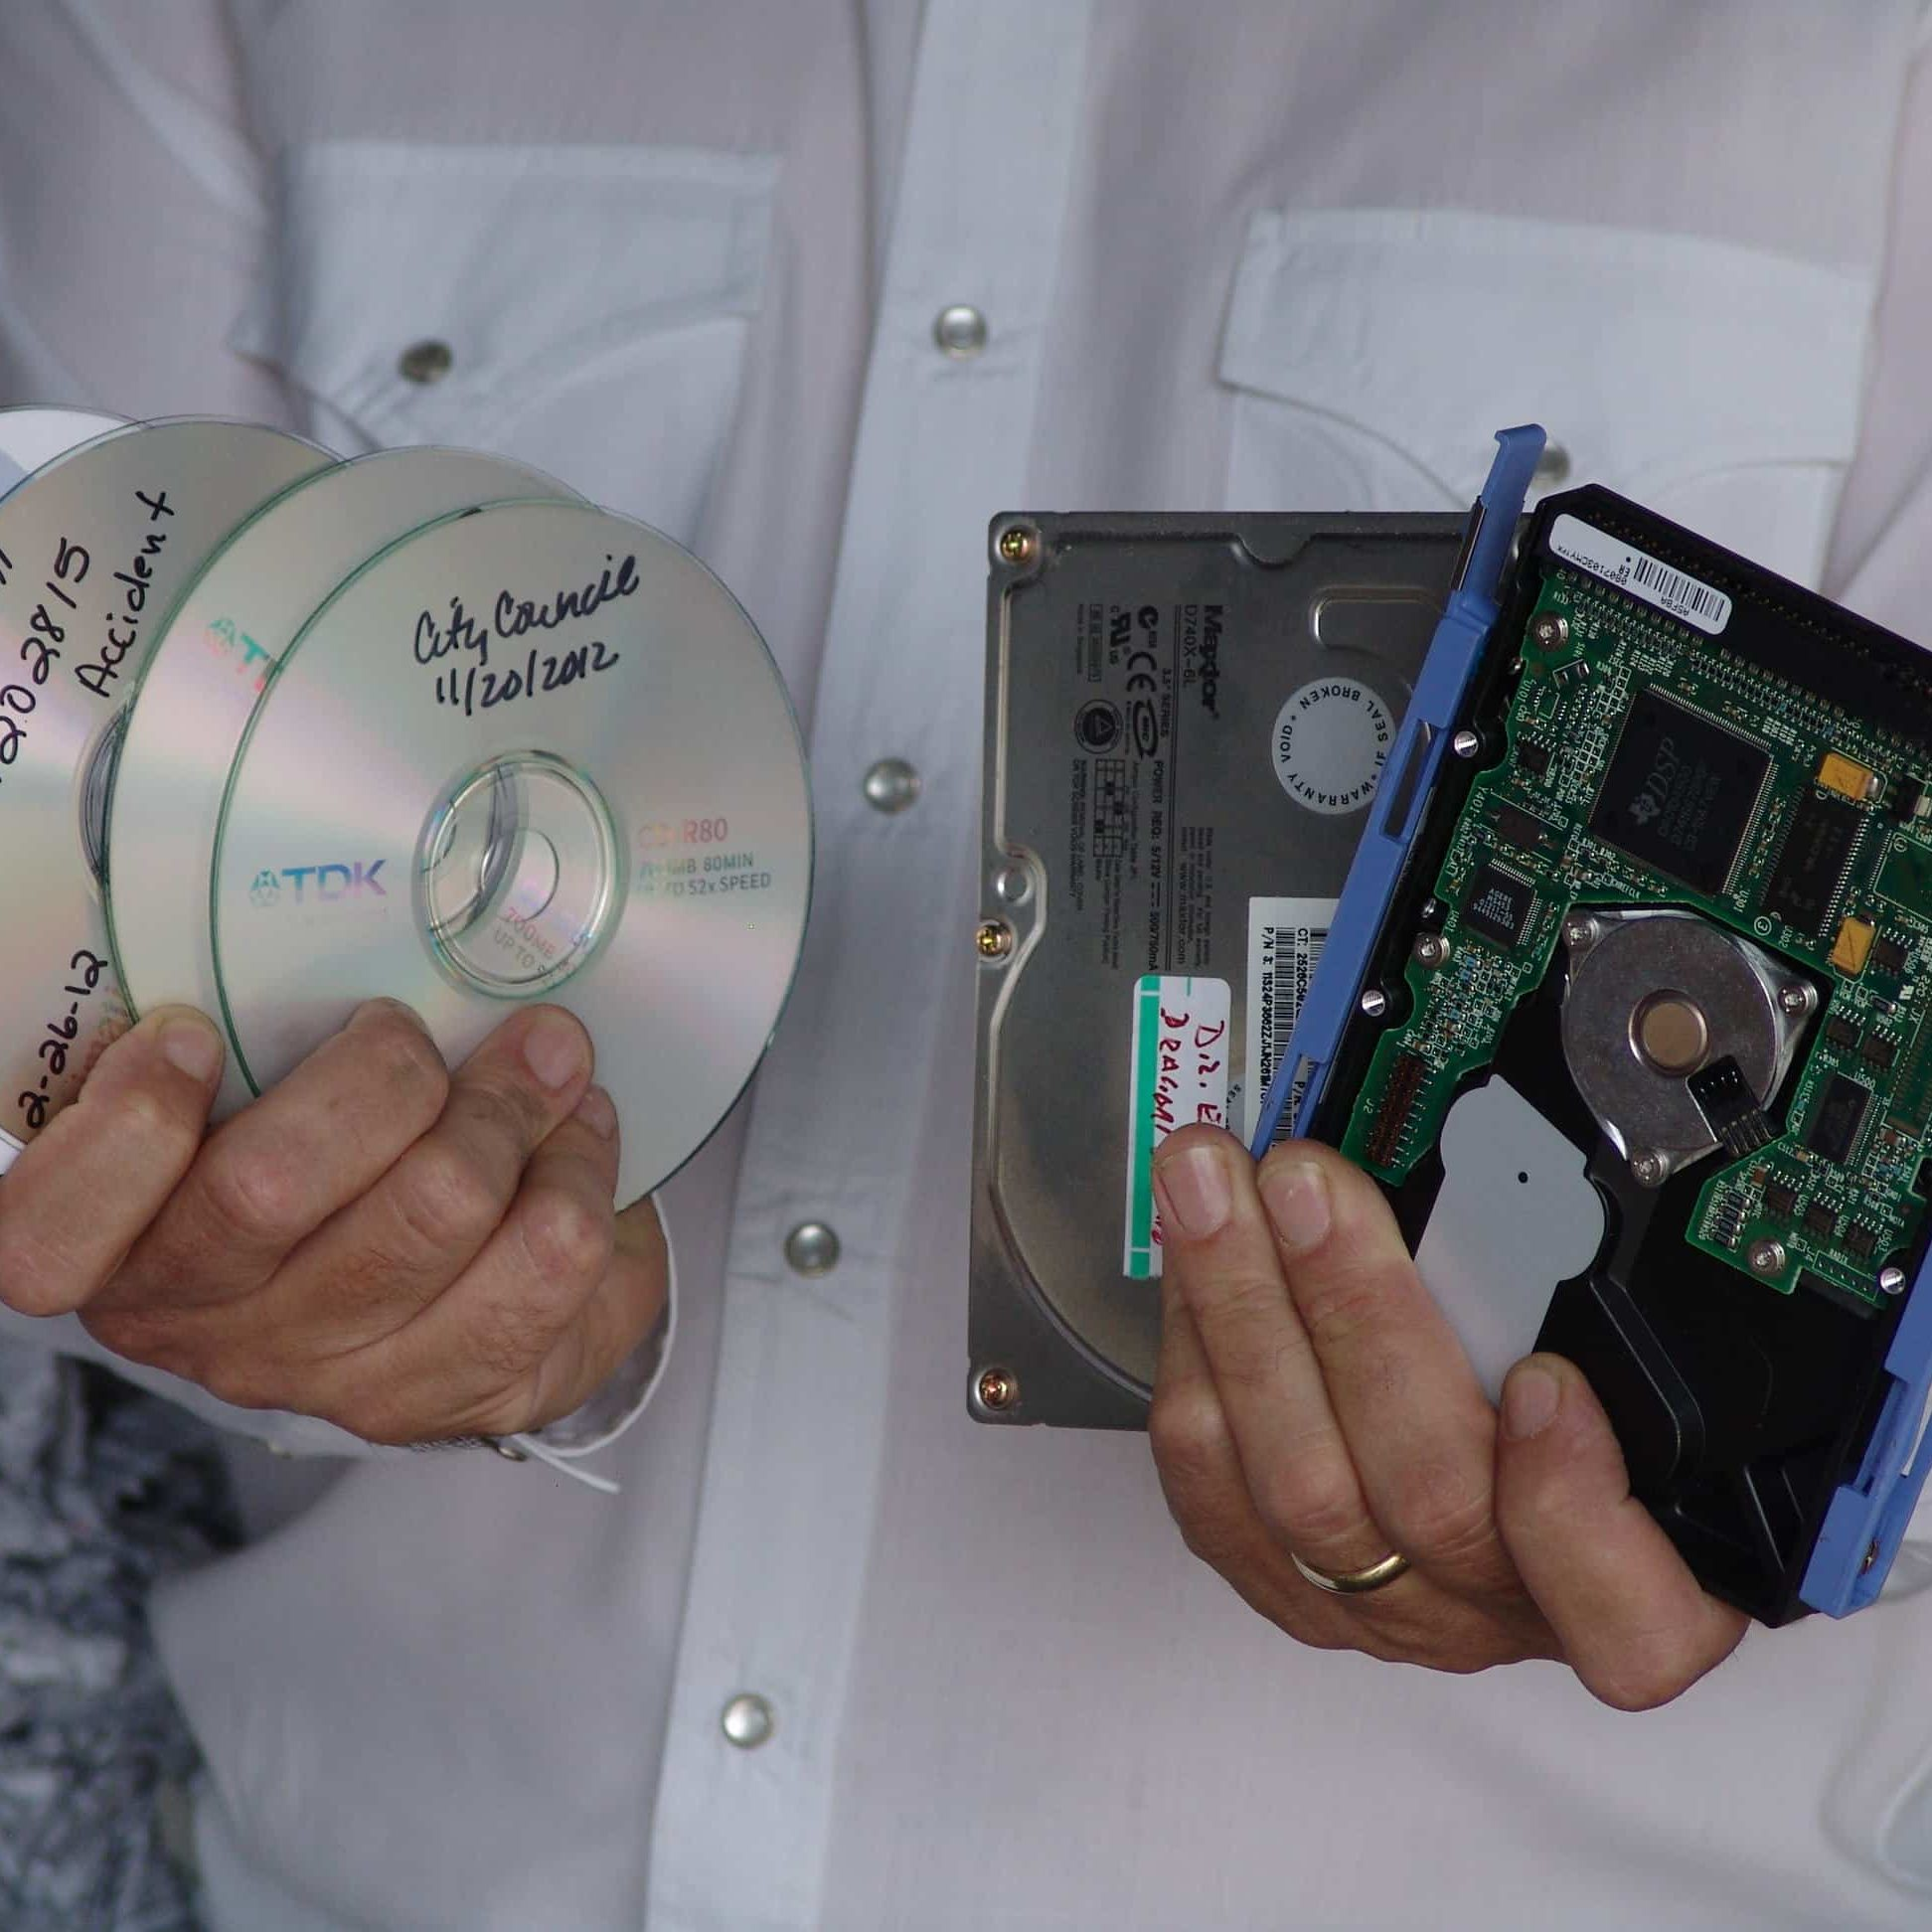 physical media & hard drives to be destroyed